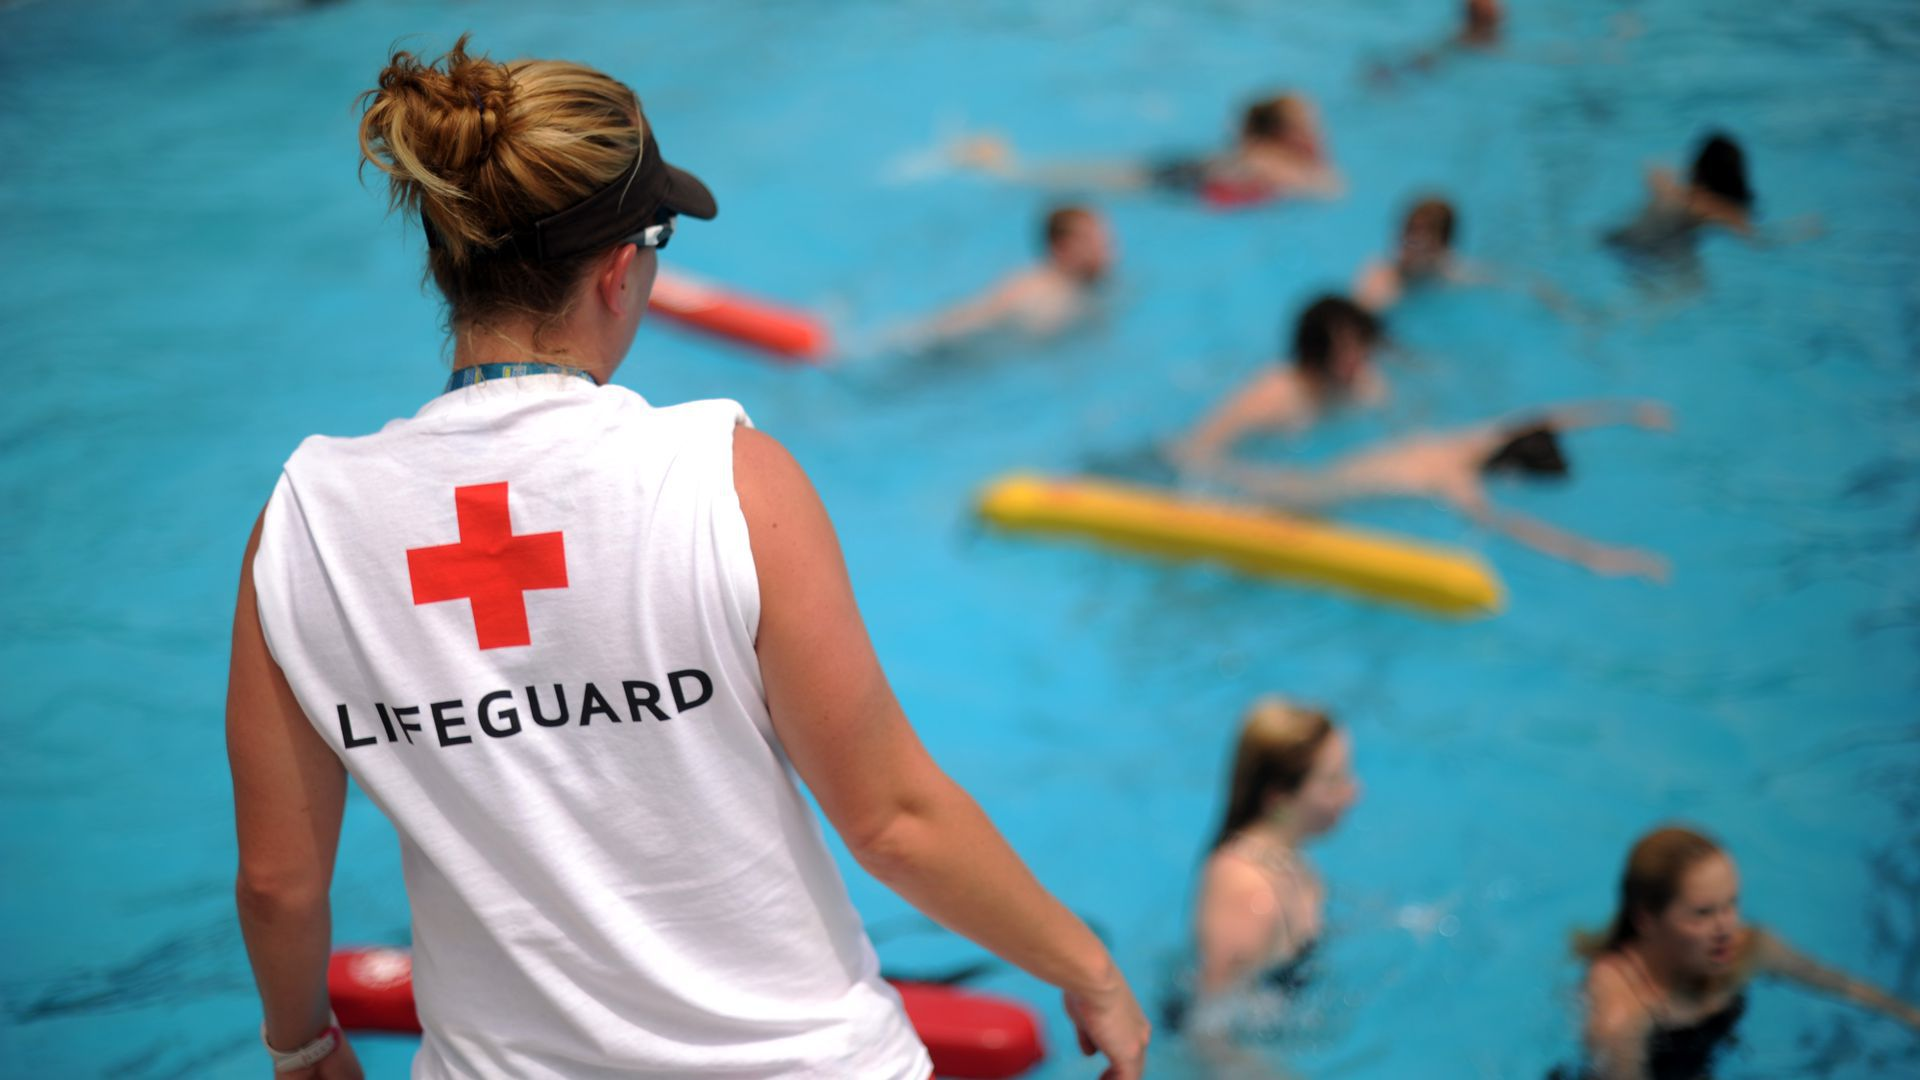 A woman in a lifeguard t-shirt watches a pool